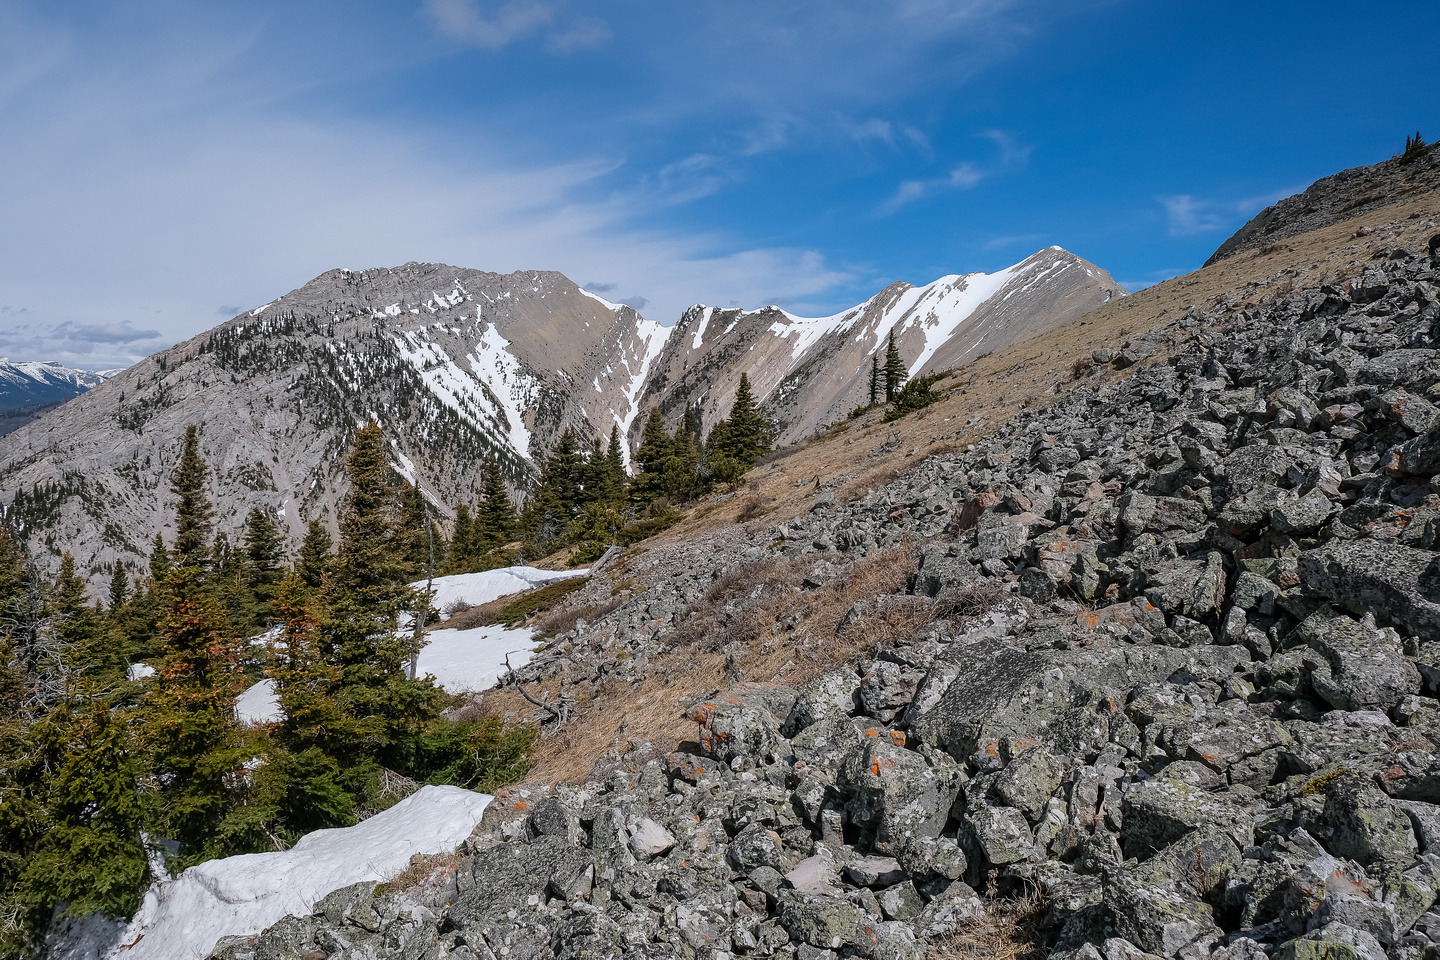 Traversing the ridge from The Dog towards Livingstone South and Morin Peak (C).